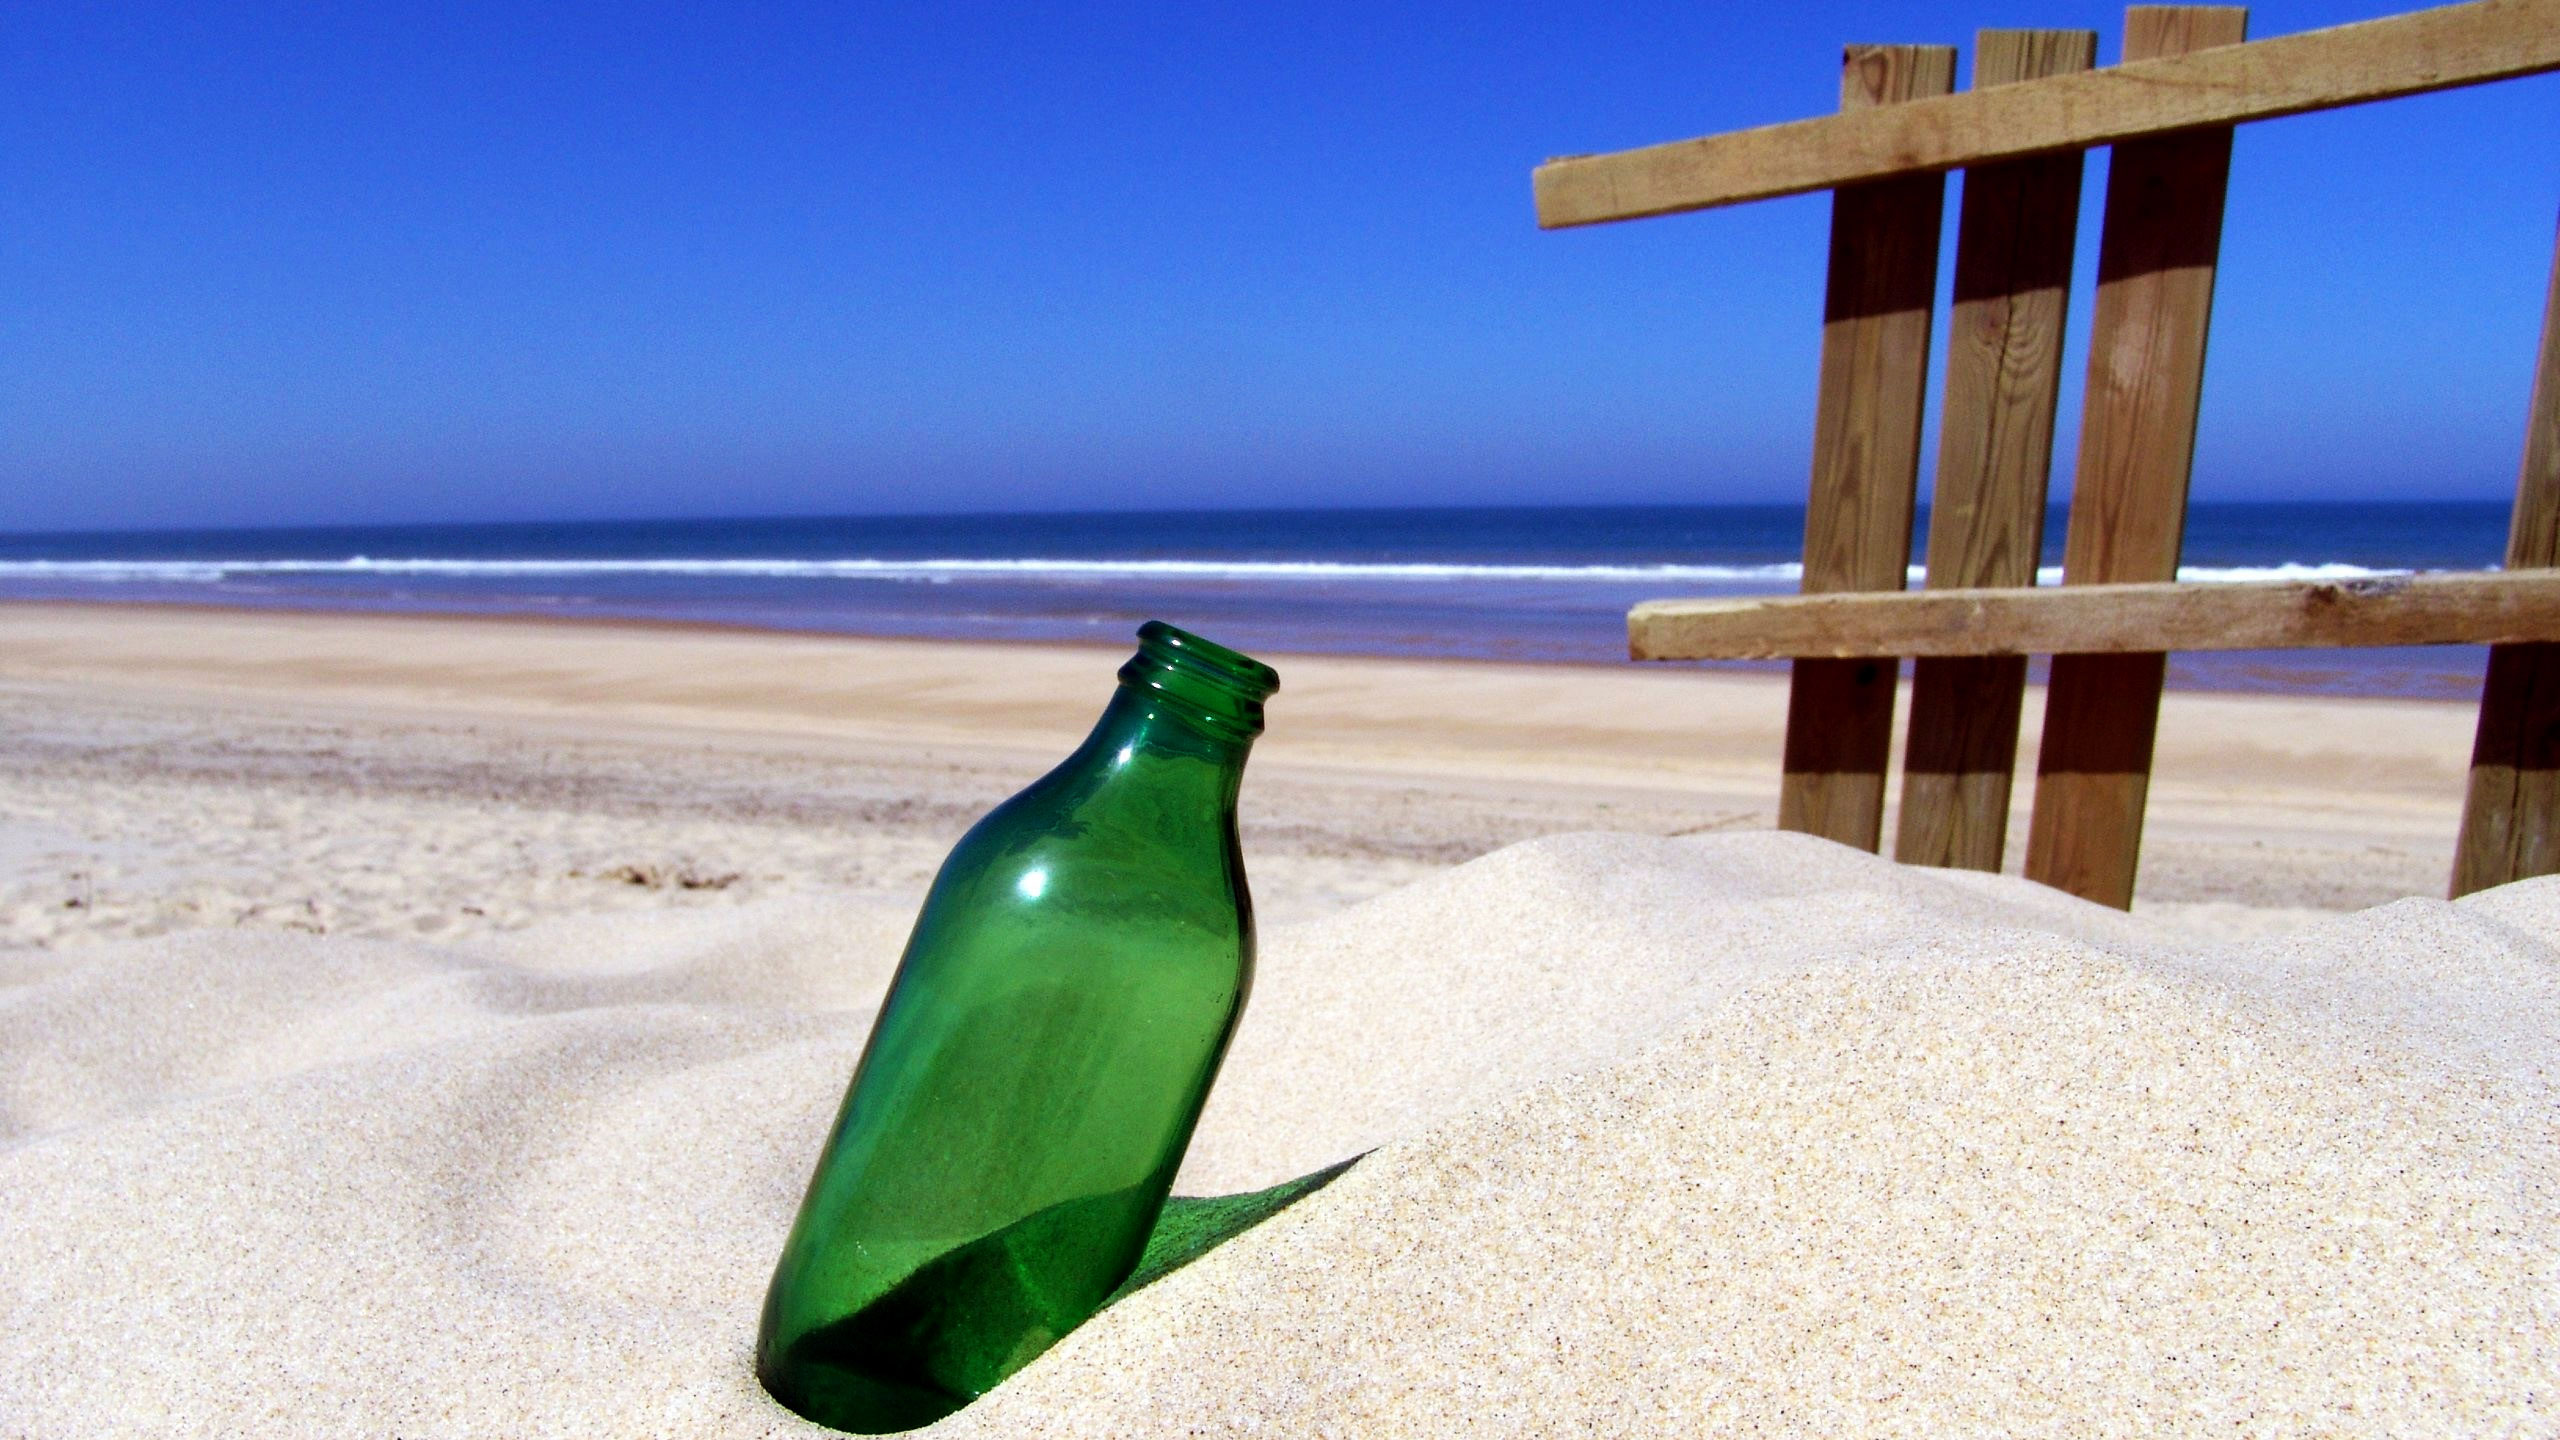 I left a bottle so you could sail your note to sea at Spillwords.com